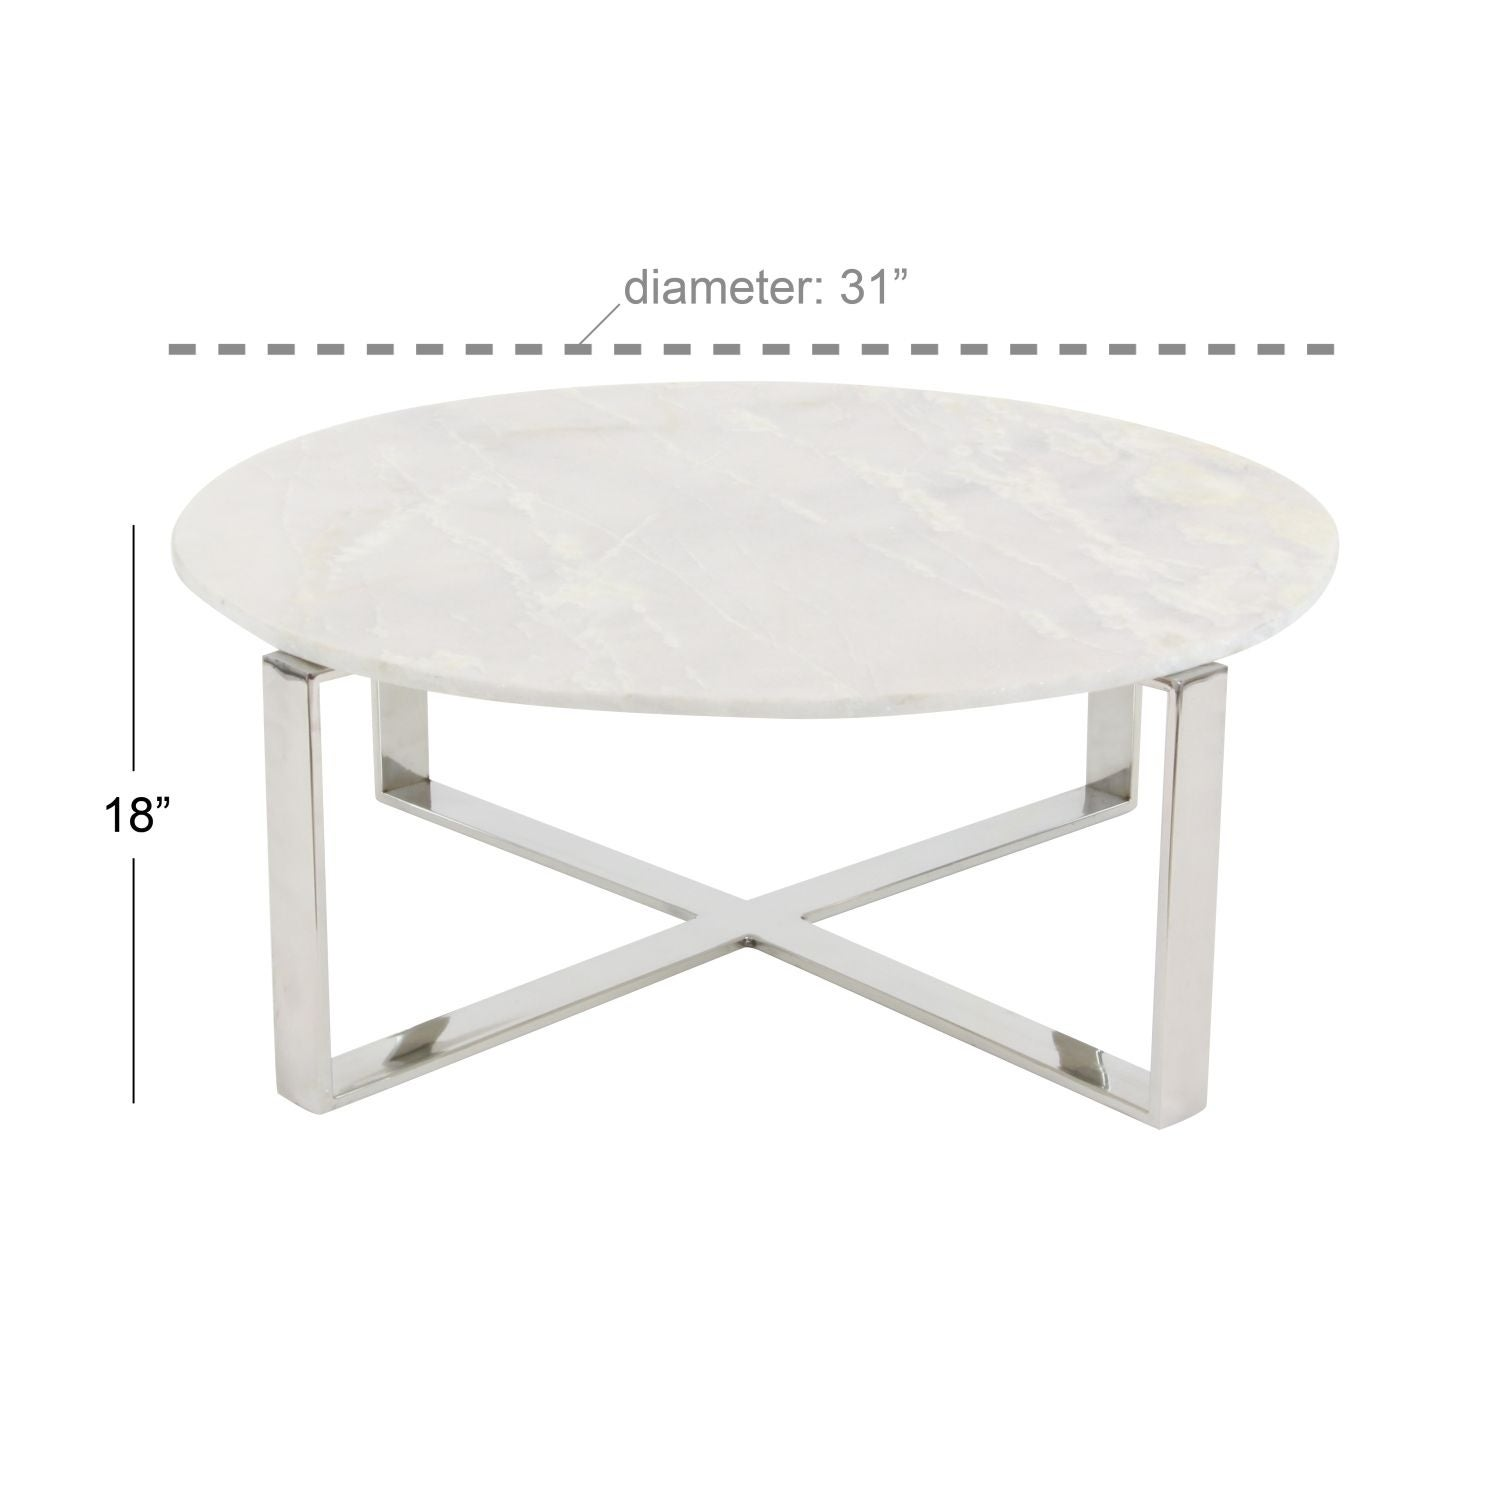 Studio 350 Stainless Steel Marble Coffee Table 31 inches wide 18